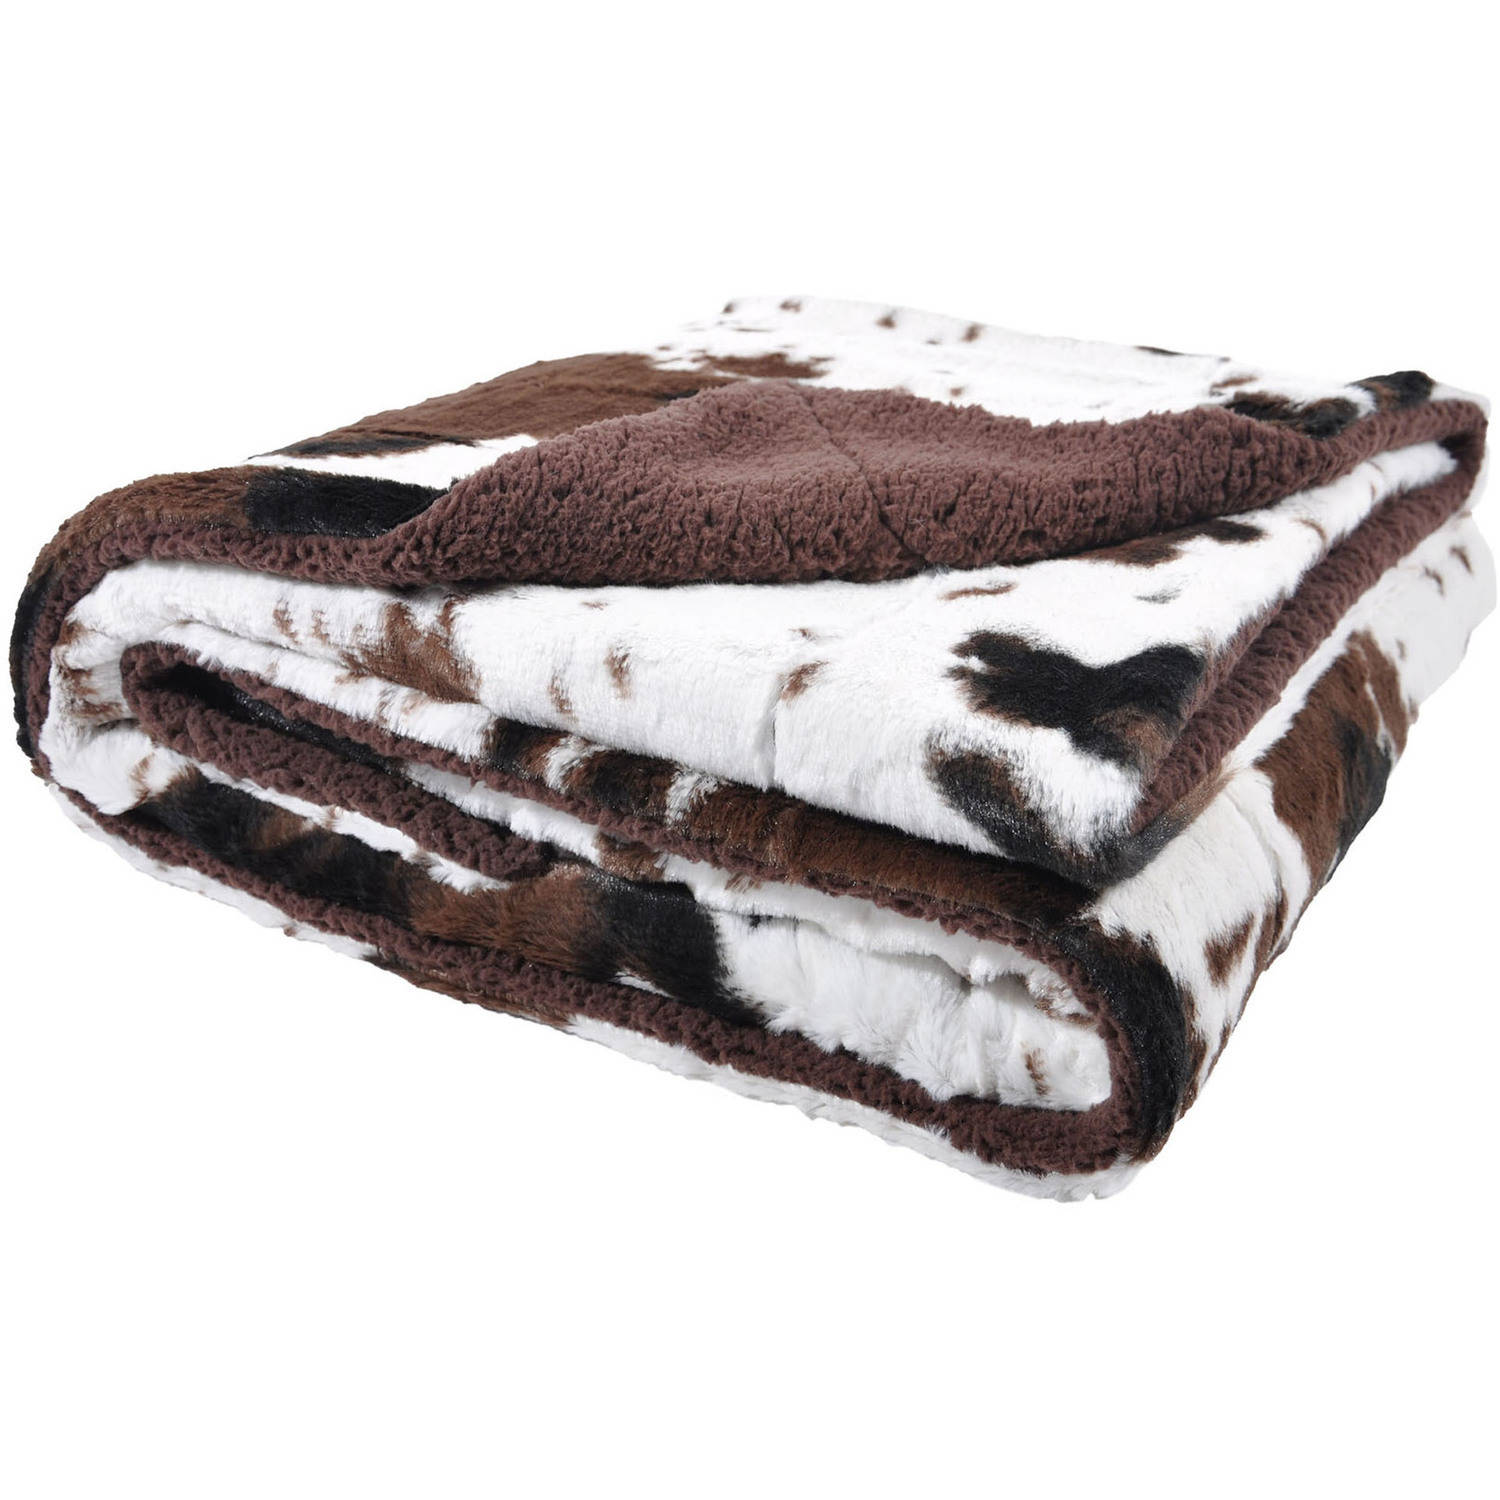 Cowhide Print and Sherpa Plush Throw Blanket, Brown by Sleeping Partners